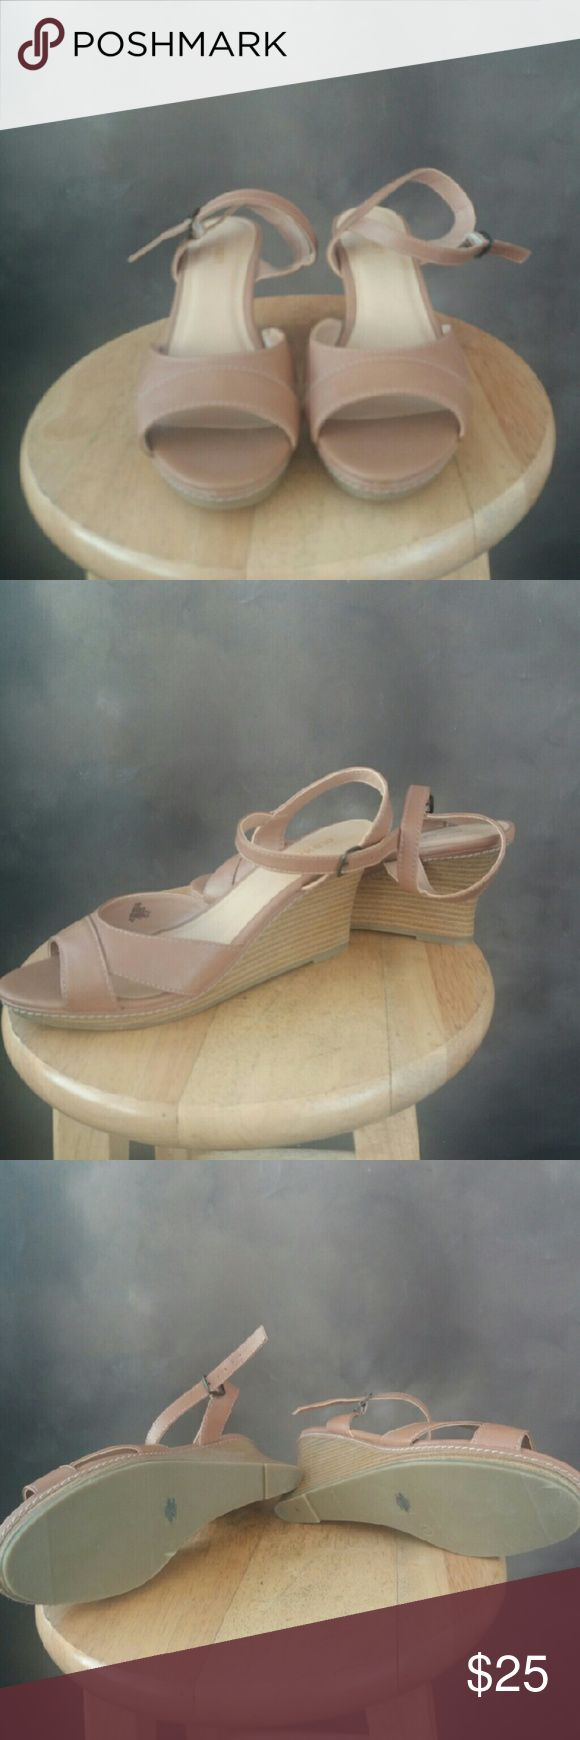 NWOT Cute Old Navy wedge sandals Cute wedge sandals  Size 9 Never worn. Just took tags off. Old Navy Shoes